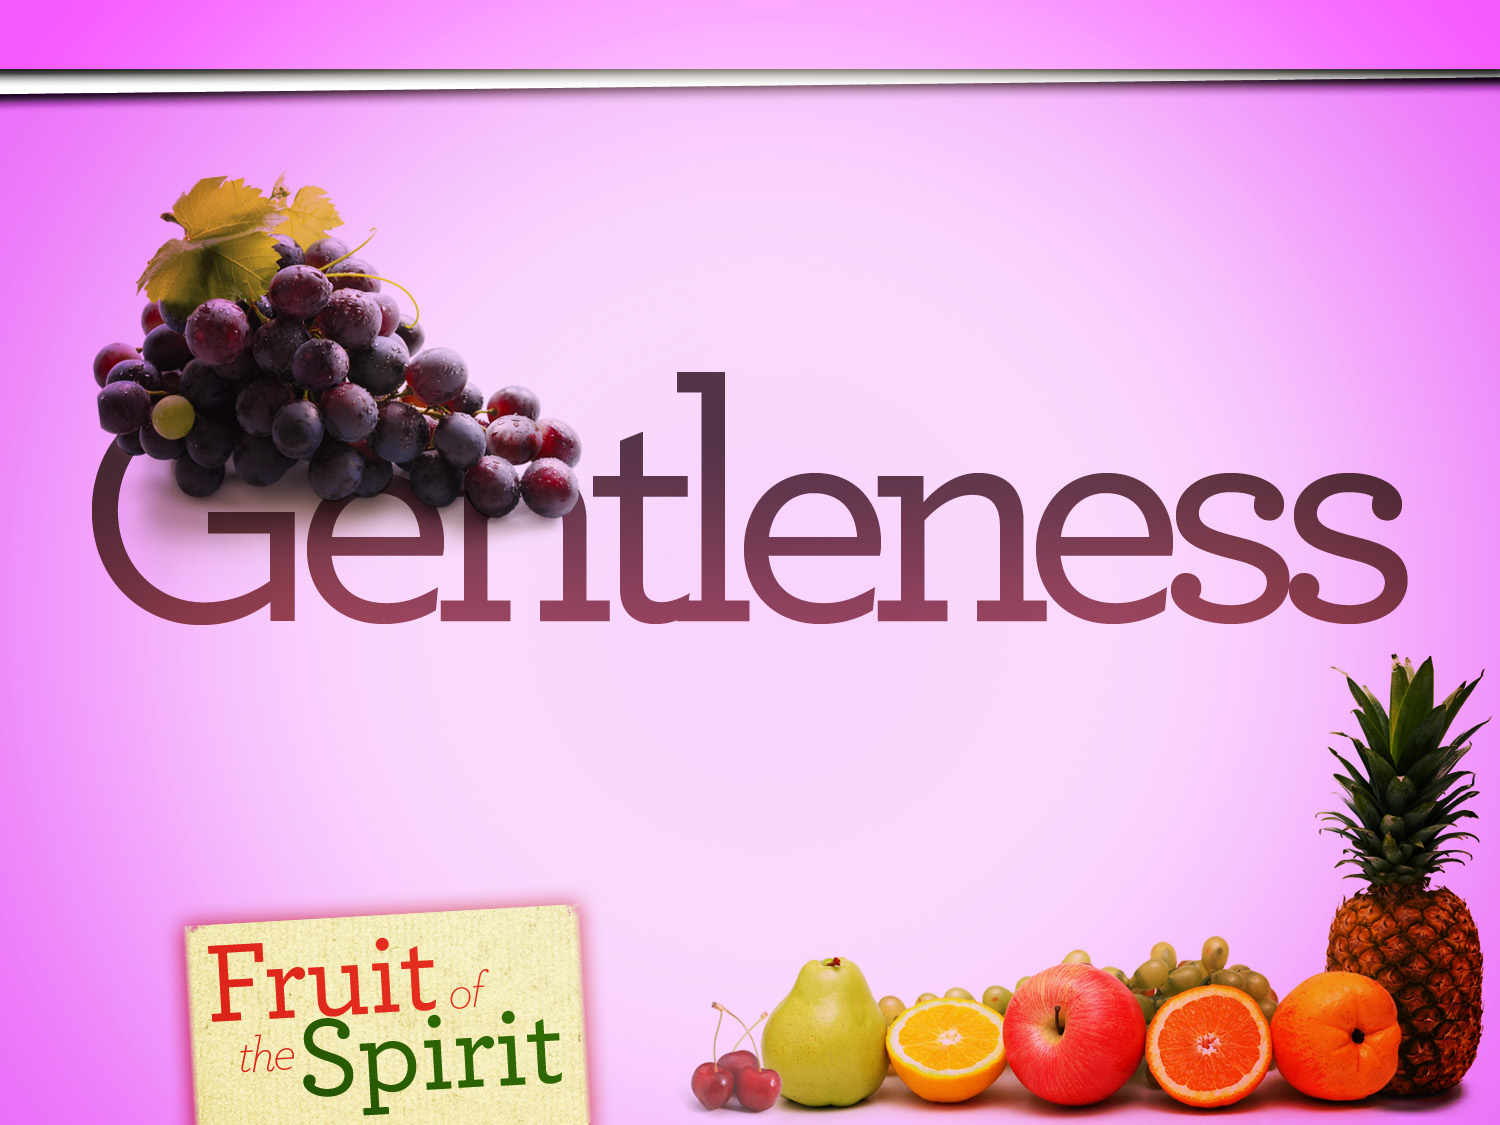 Gentleness - Fruit of the Spirit (Jeremy Bowling)